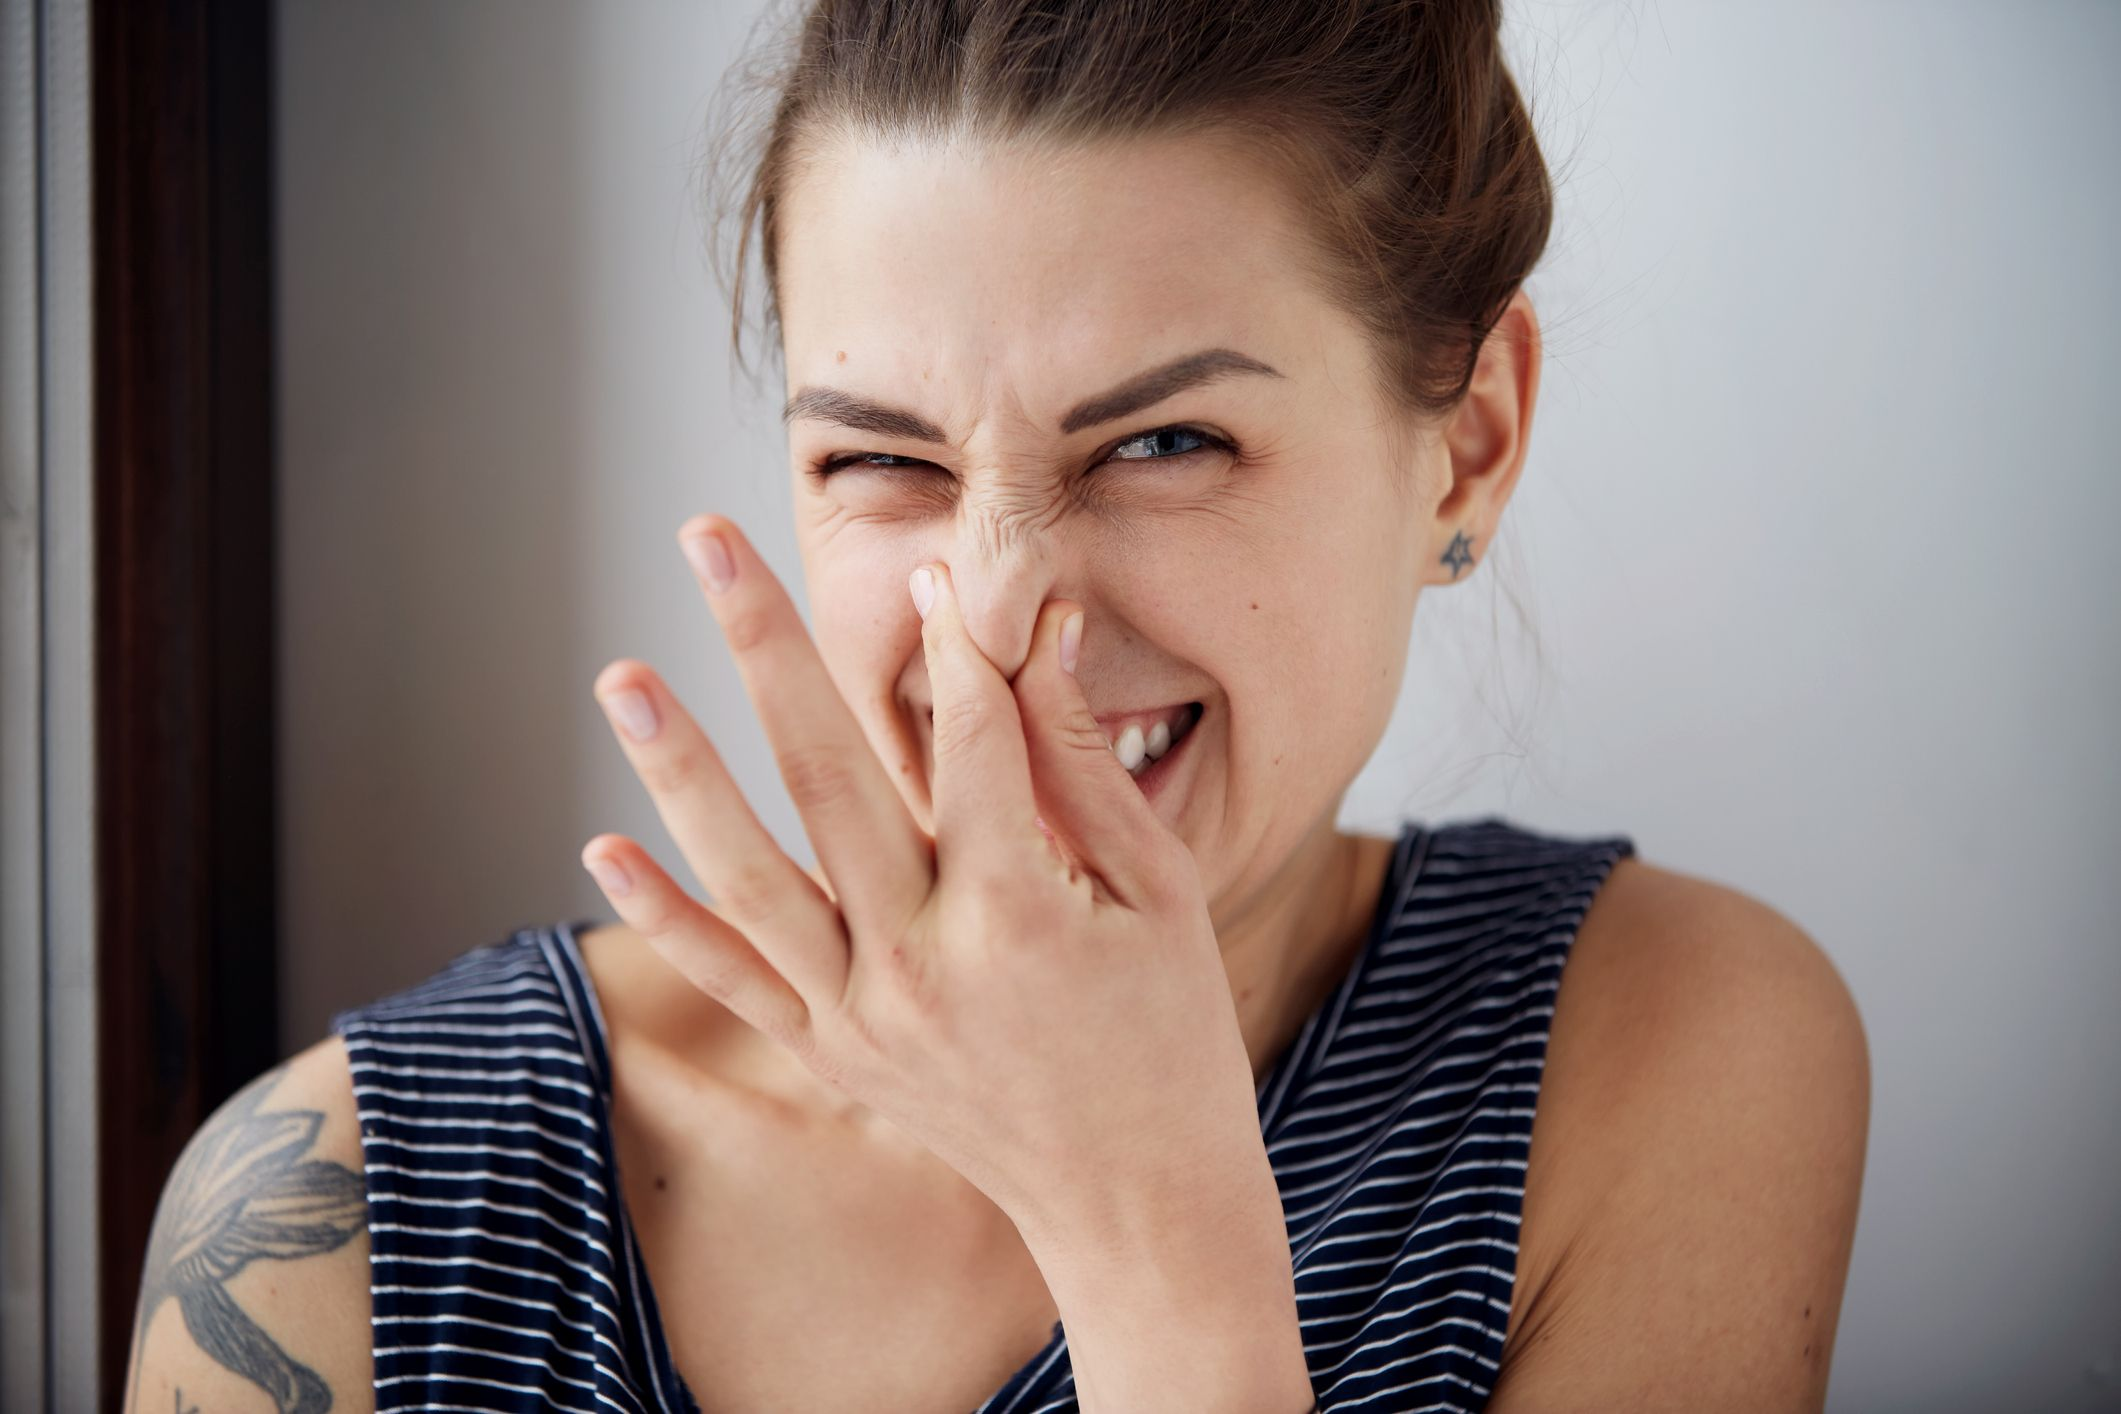 Why Are My Farts So Smelly? - 8 Reasons for Really Stinky Gas